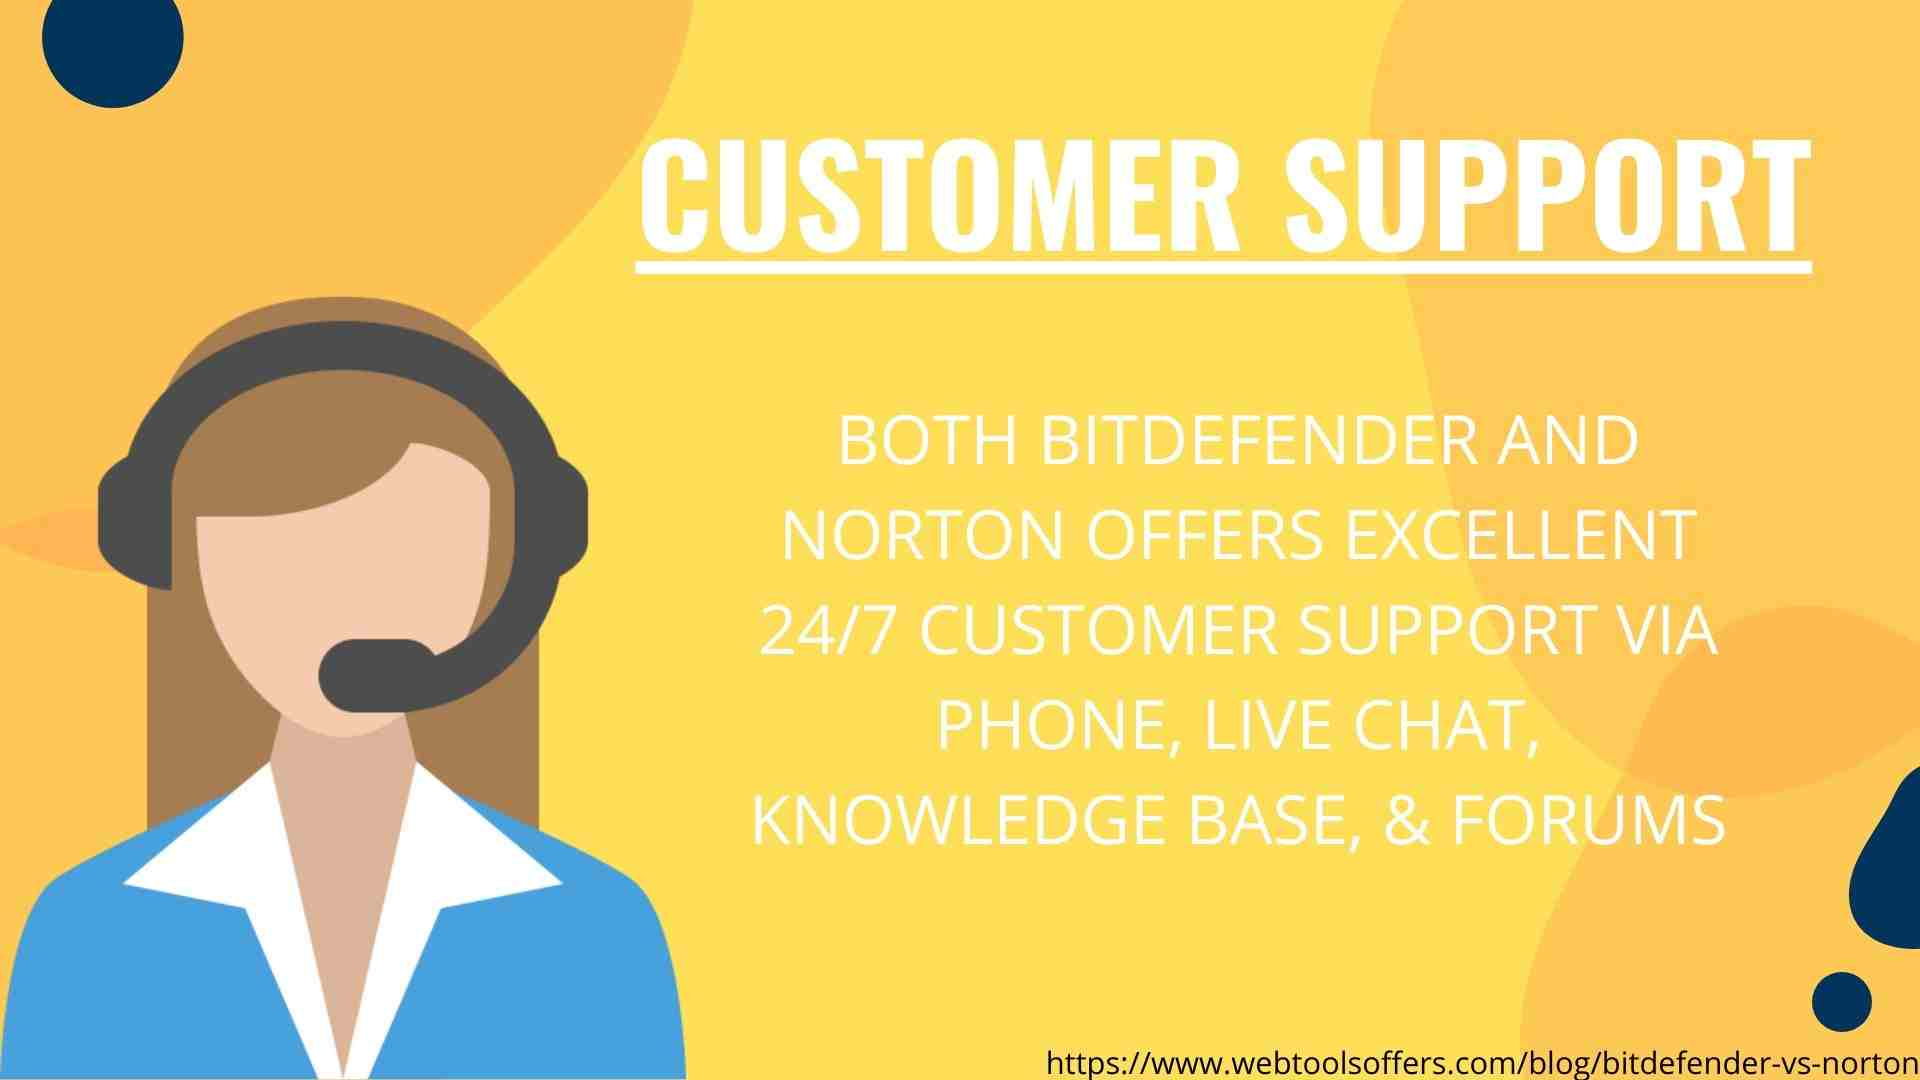 Bitdefender Vs Norton- Customer Support